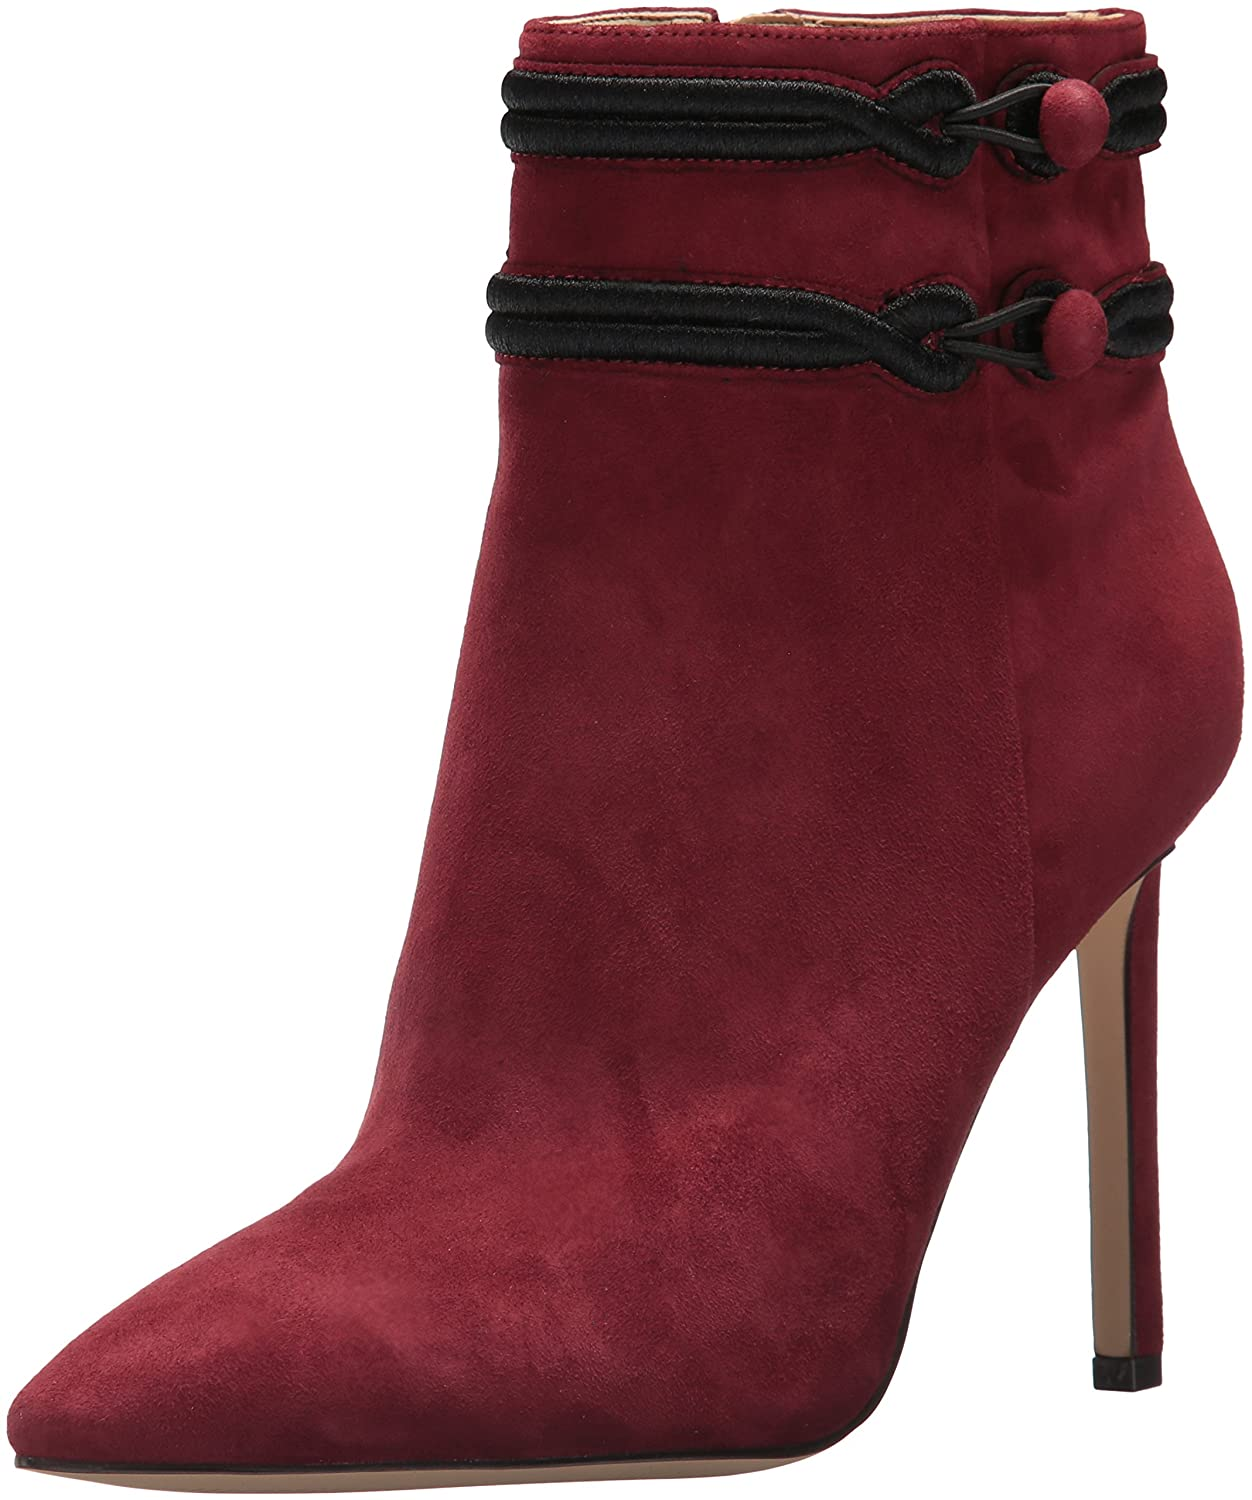 Nine West Women's Teresa Suede Ankle Boot B01MV7ATCZ 8 B(M) US|Wine/Wine